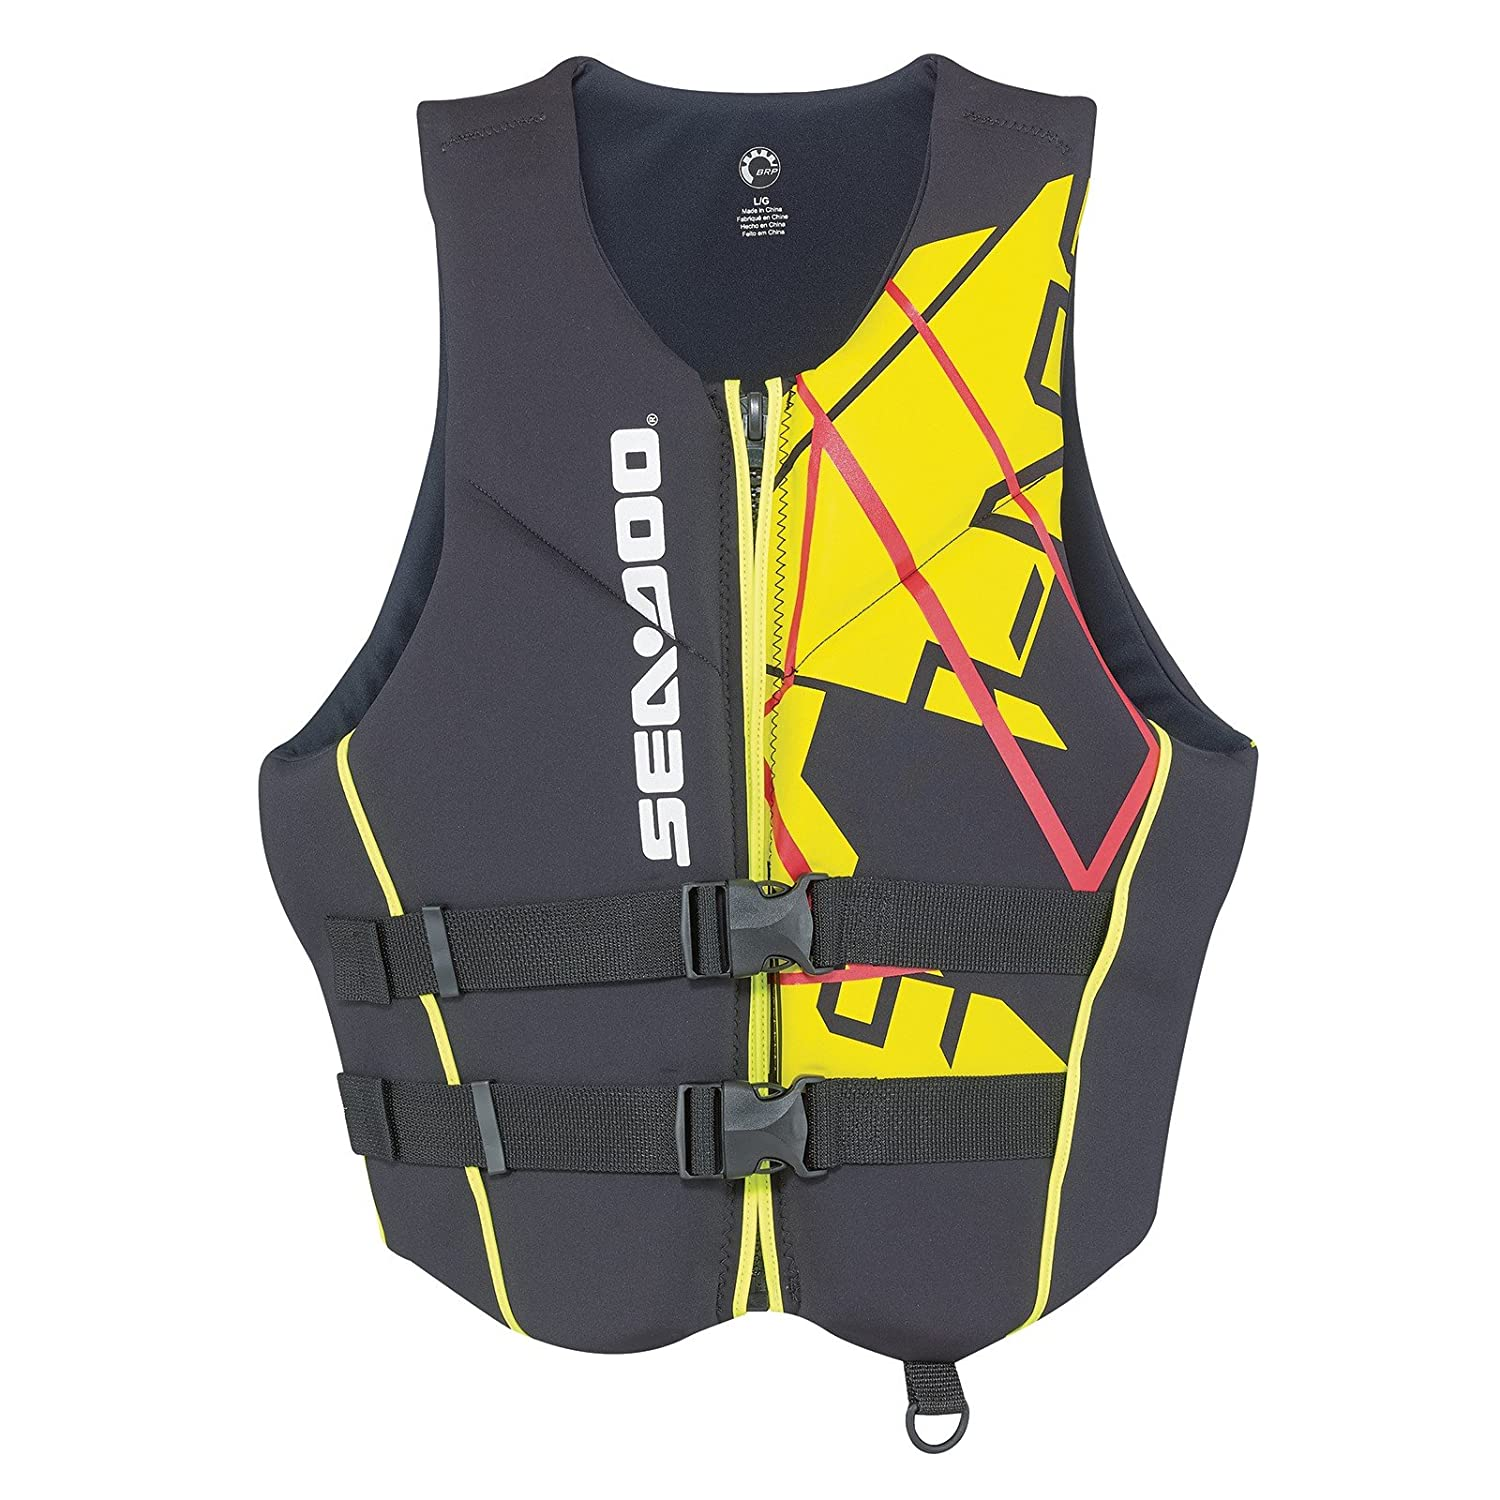 【送料込】 BRP Neoprene Sea-Doo Men's Neoprene Freedom PFD (XX-Large, Life Jacket Life Vest (XX-Large, Yellow) B0195C7MJU, AliceShopCreamtea:ff06c540 --- senas.4x4.lt